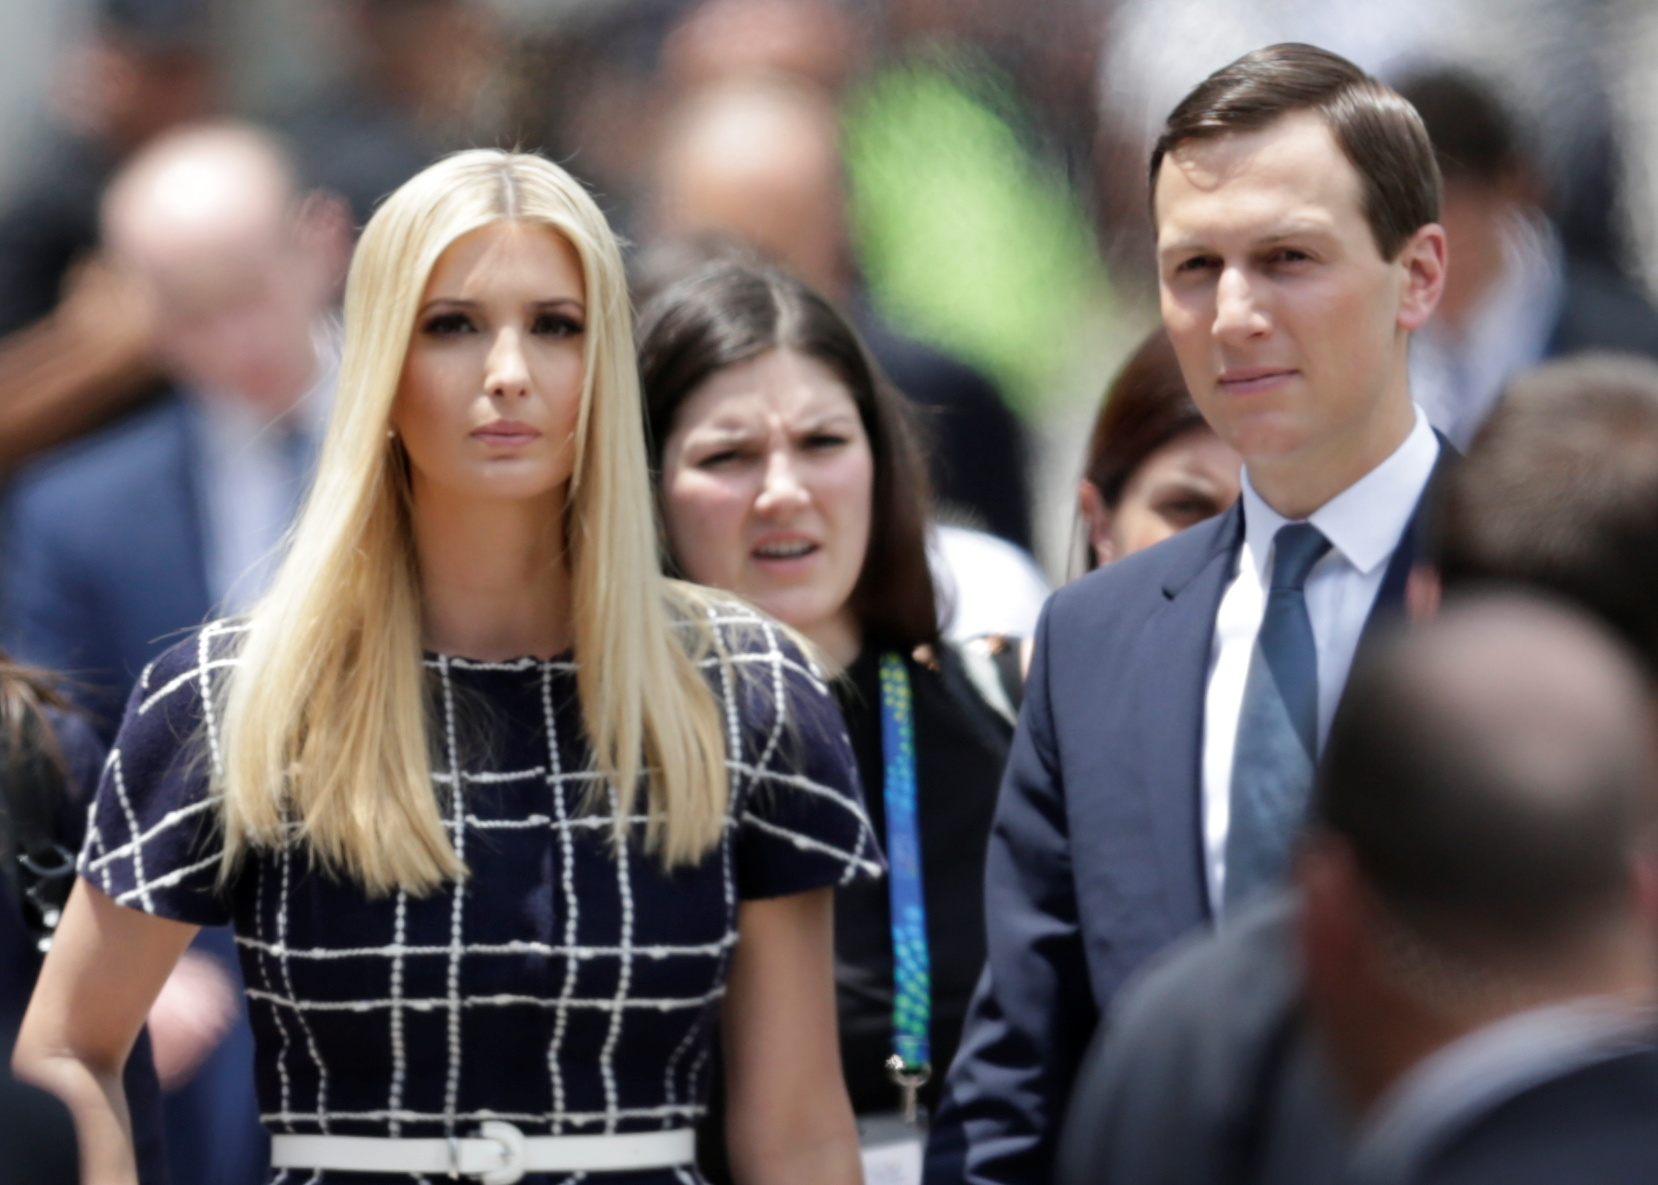 White House advisors Jared Kushner and Ivanka Trump arrive for the G20 leaders summit in Buenos Aires, Argentina November 30, 2018. REUTERS/Luisa Gonzalez